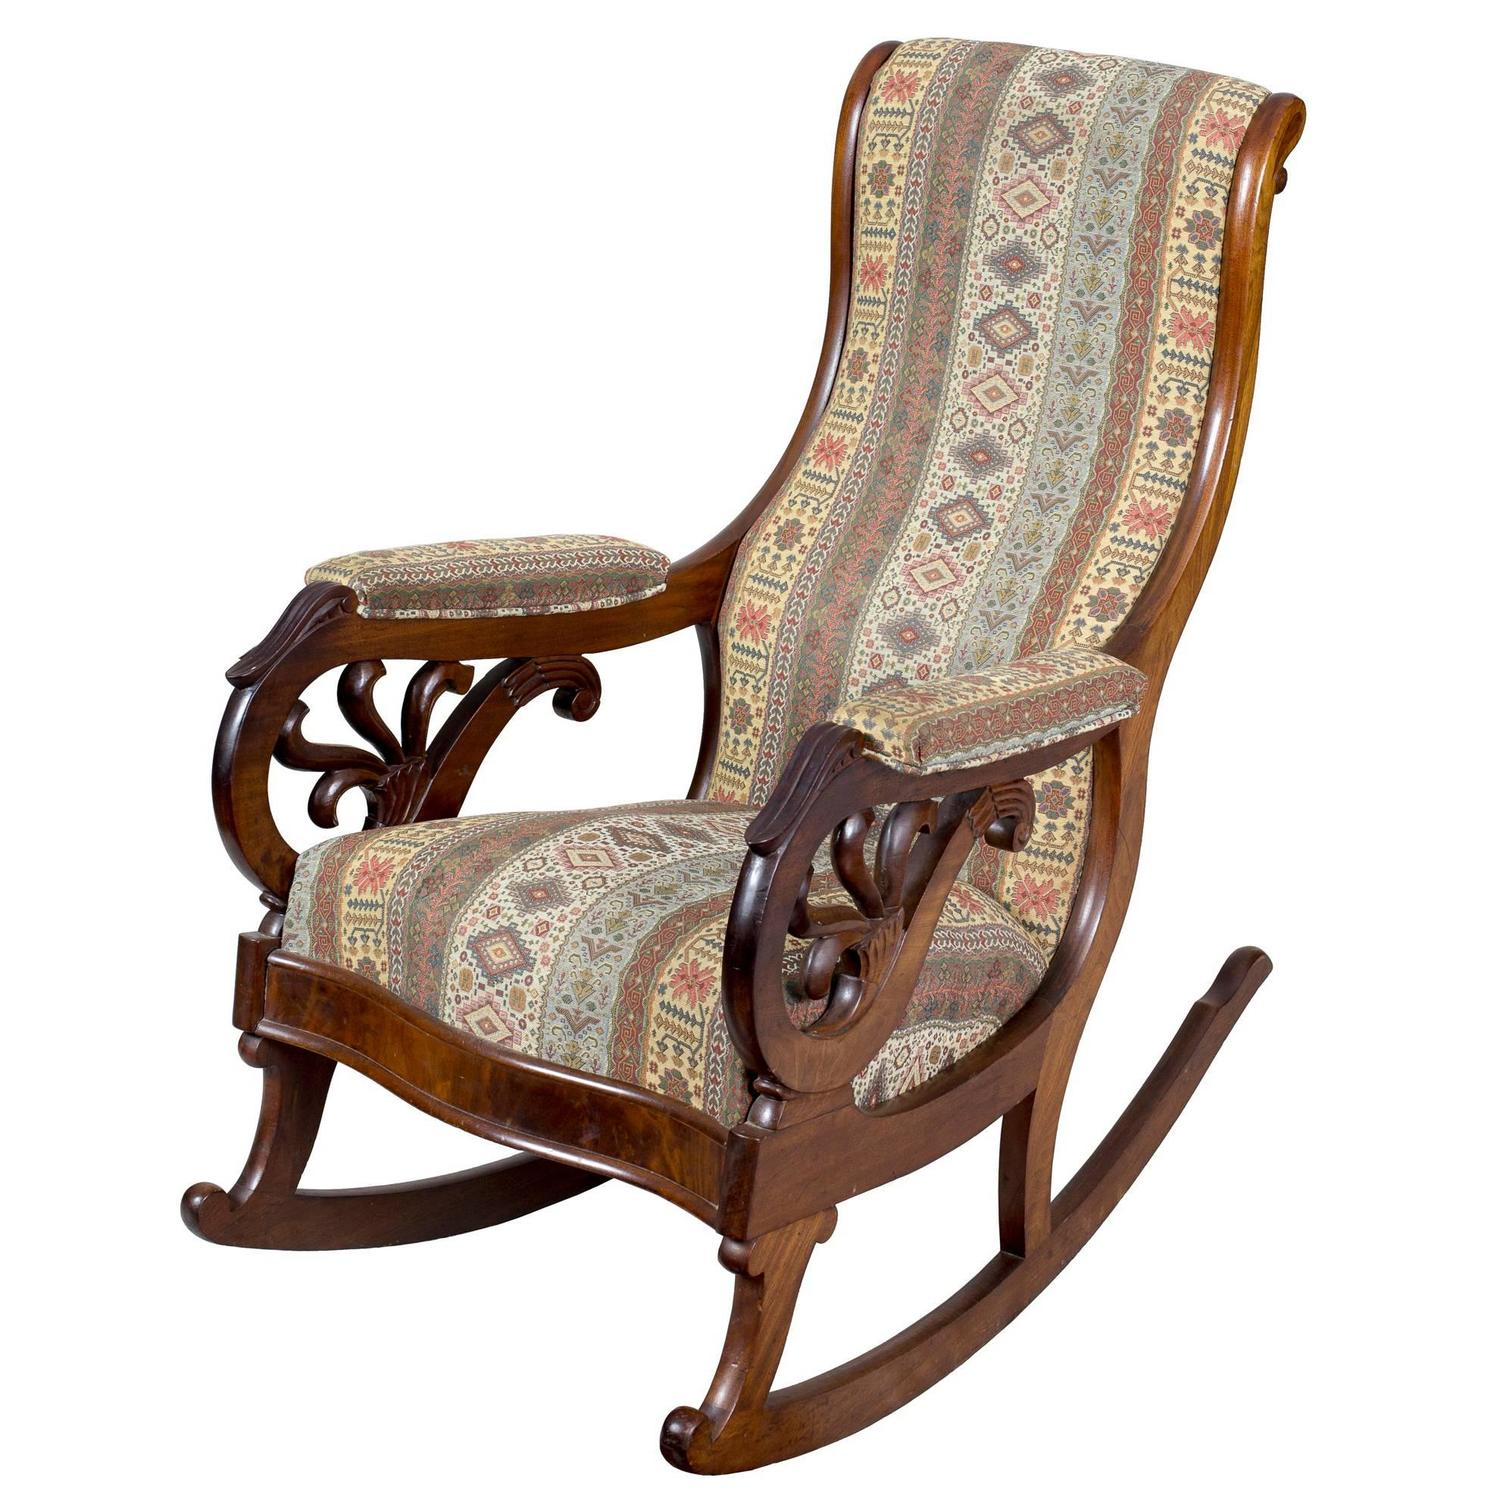 Victorian rocking chair - Classical Carved Mahogany Rocker Probably Boston Circa 1830